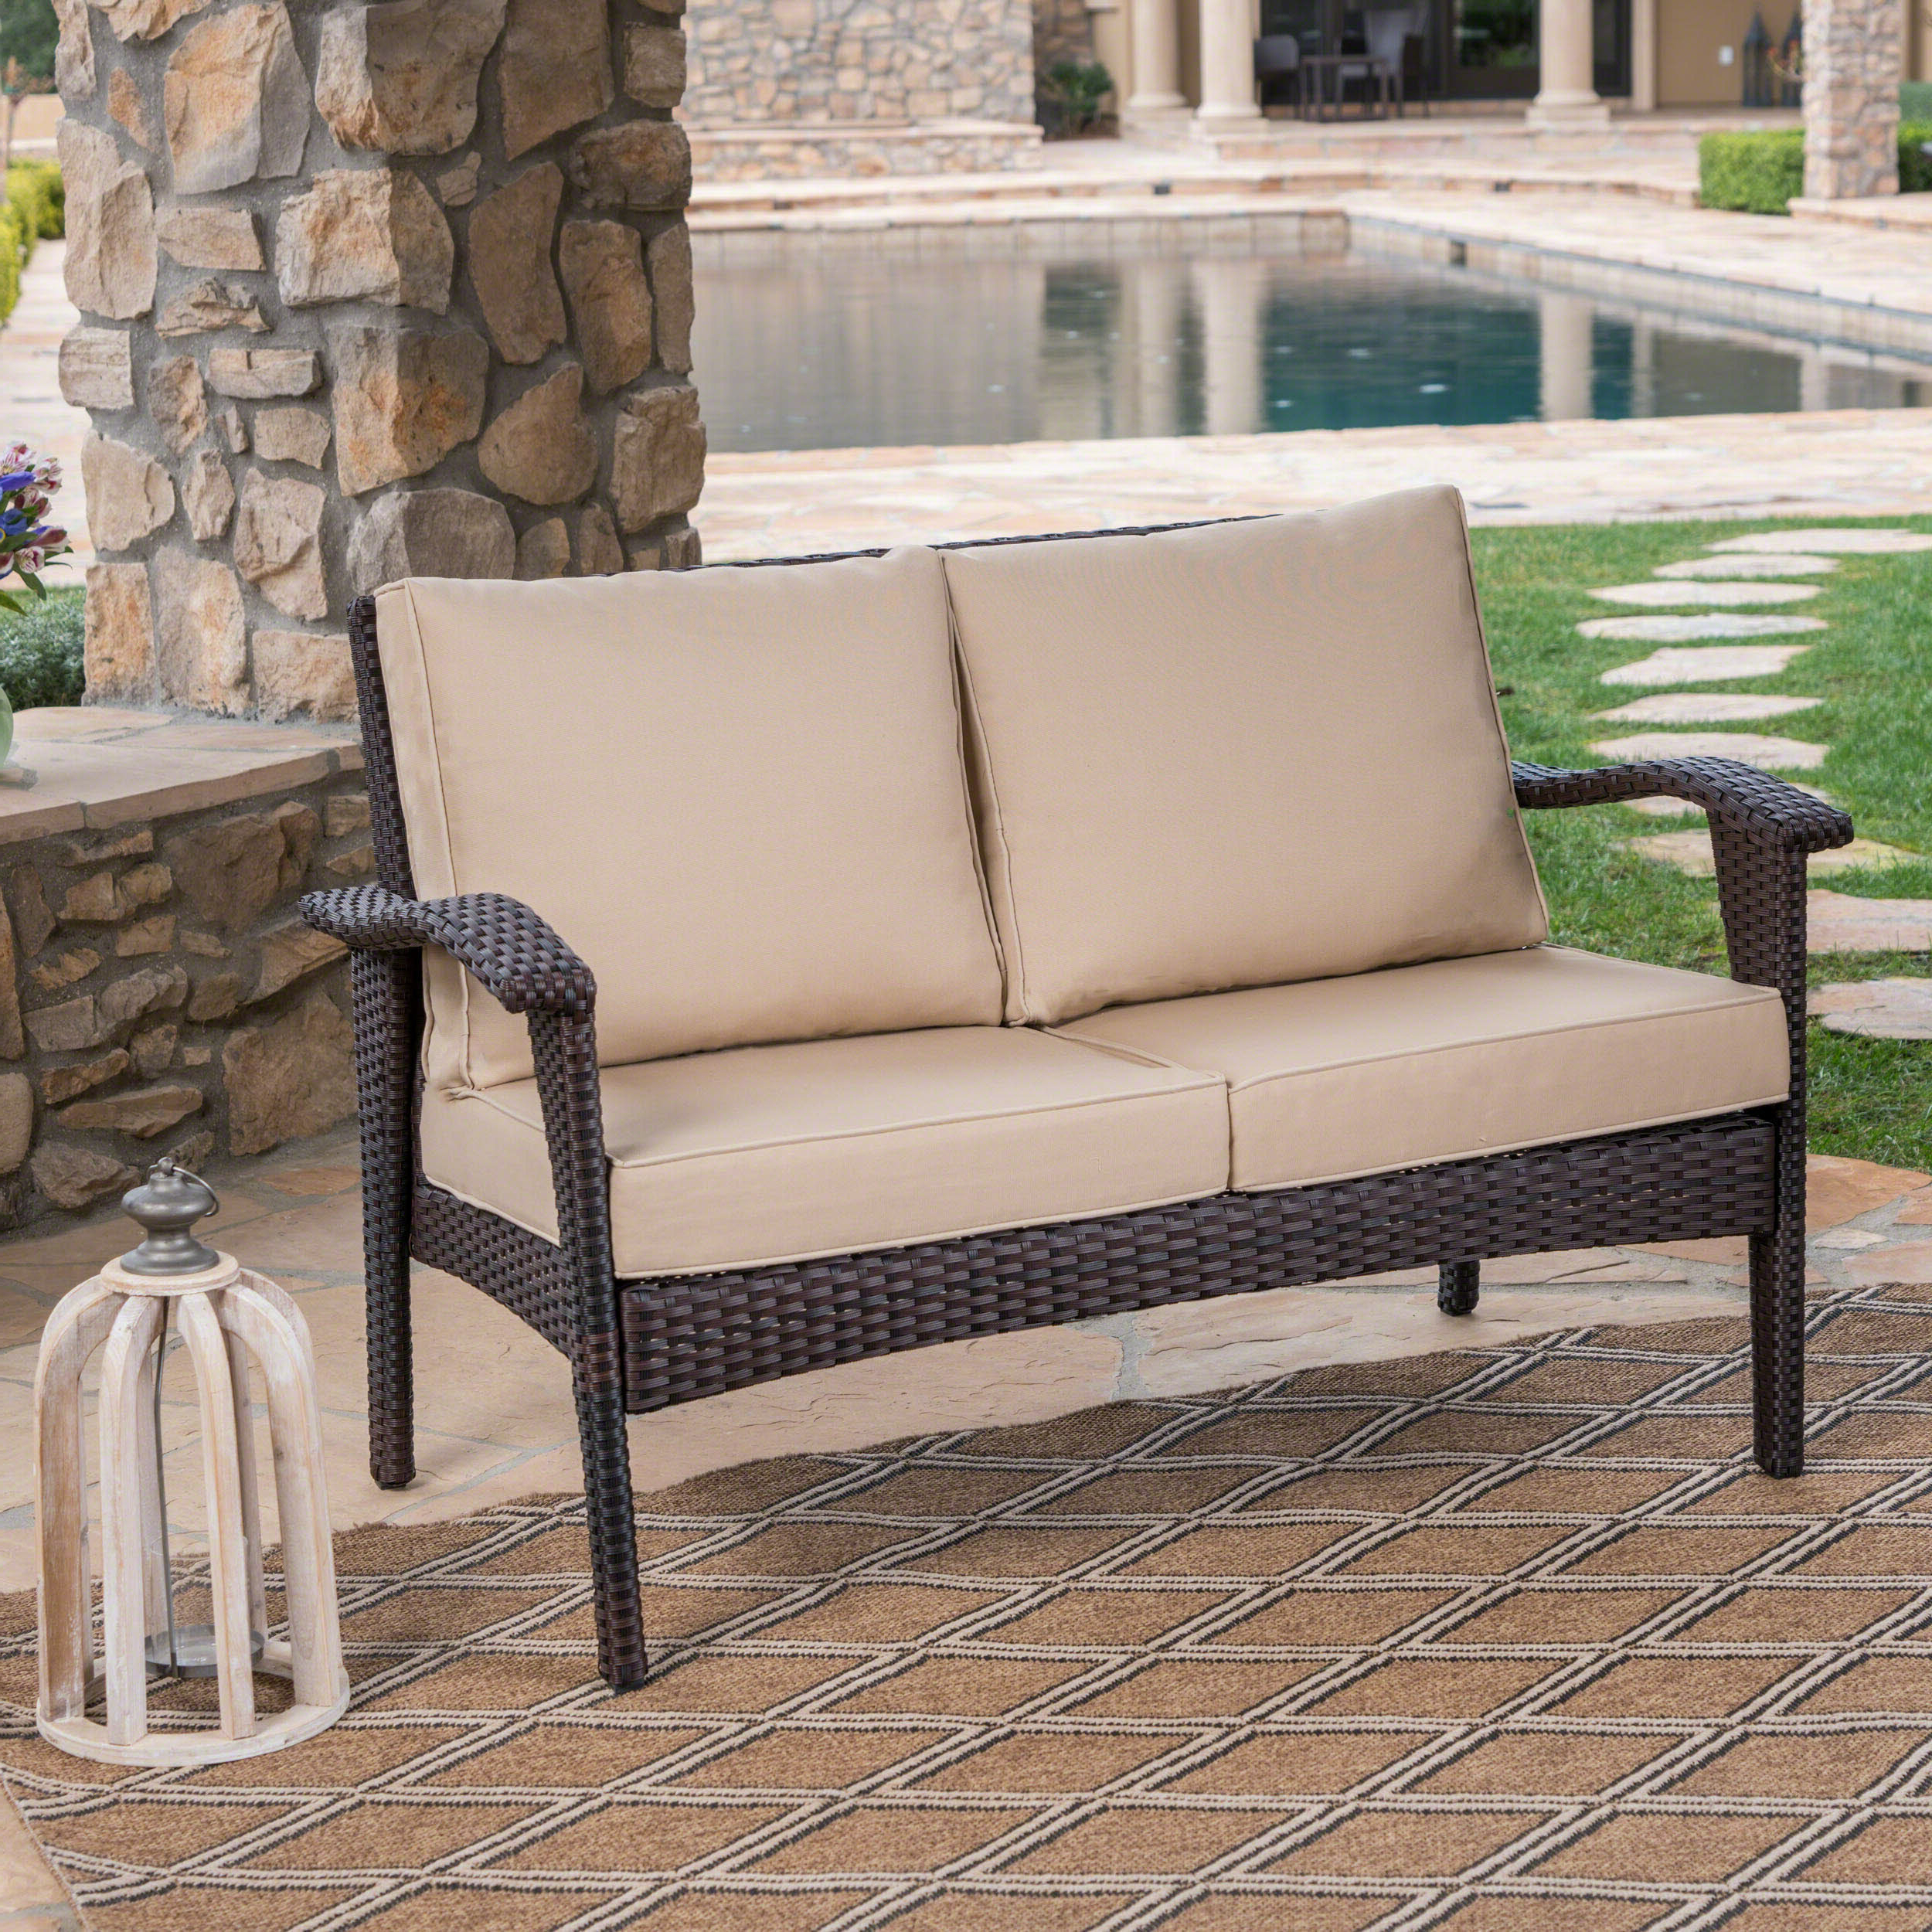 Salvato Sofas With Cushion In Most Popular Hagler Outdoor Loveseat With Cushions (View 22 of 25)